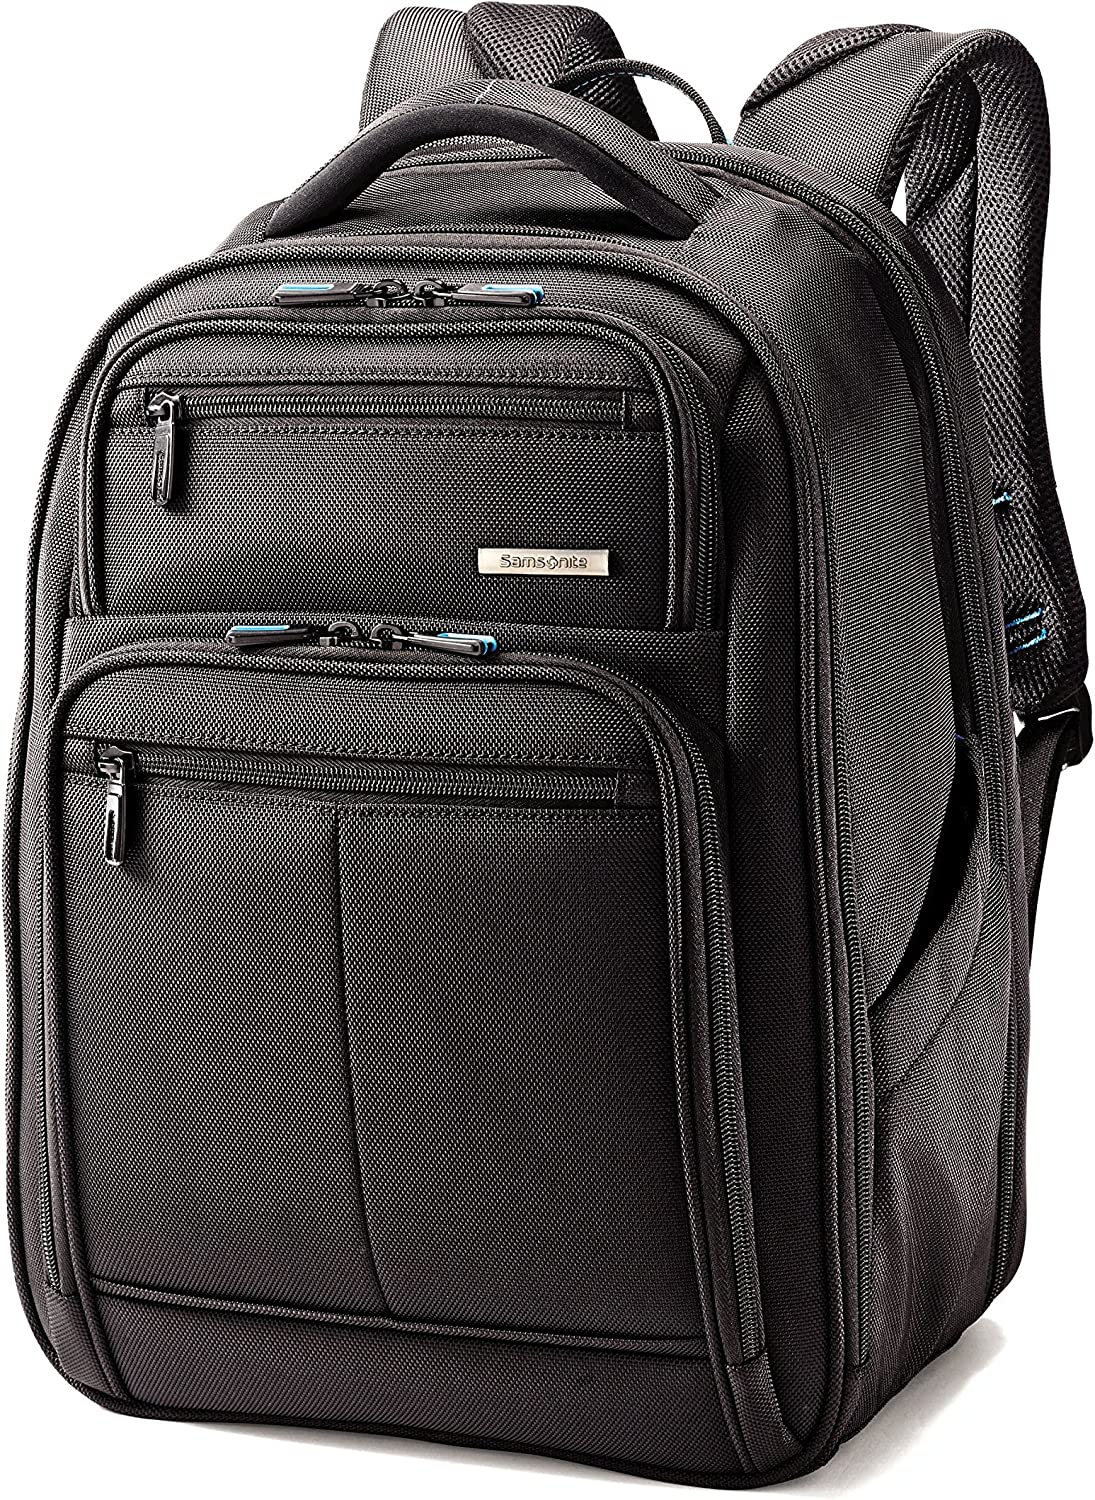 The Samsonite Novex Perfect Fit Laptop Backpack travel product recommended by Tracy Anderson on Lifney.